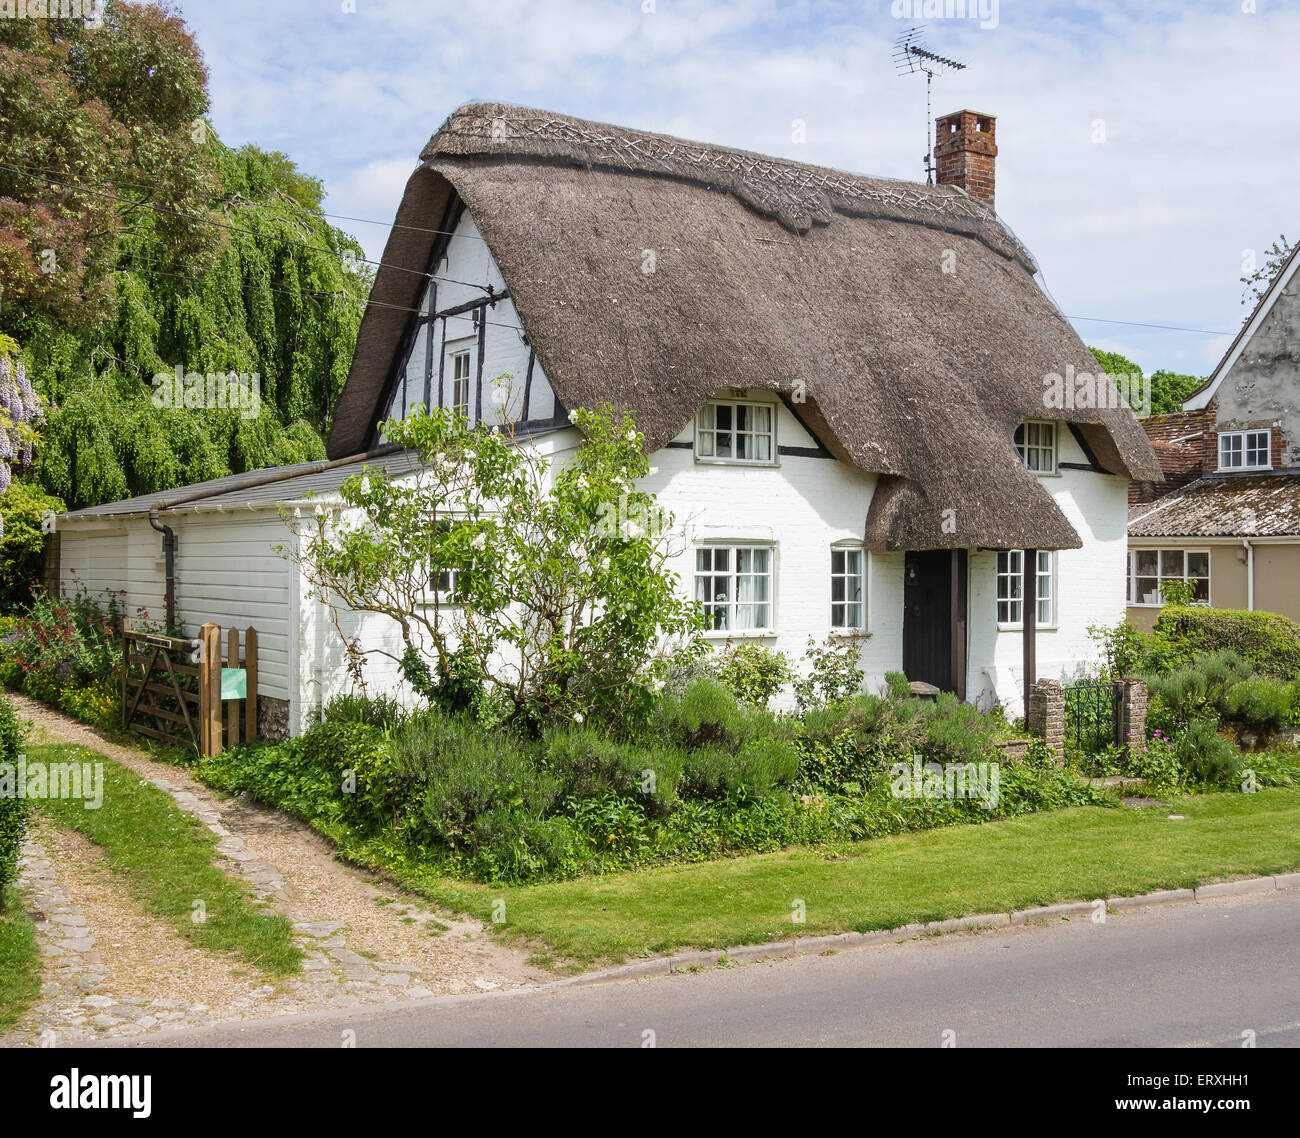 Thatched cottage in the village of martin hampshire uk stock photo royalty free image - The thatched cottage ...